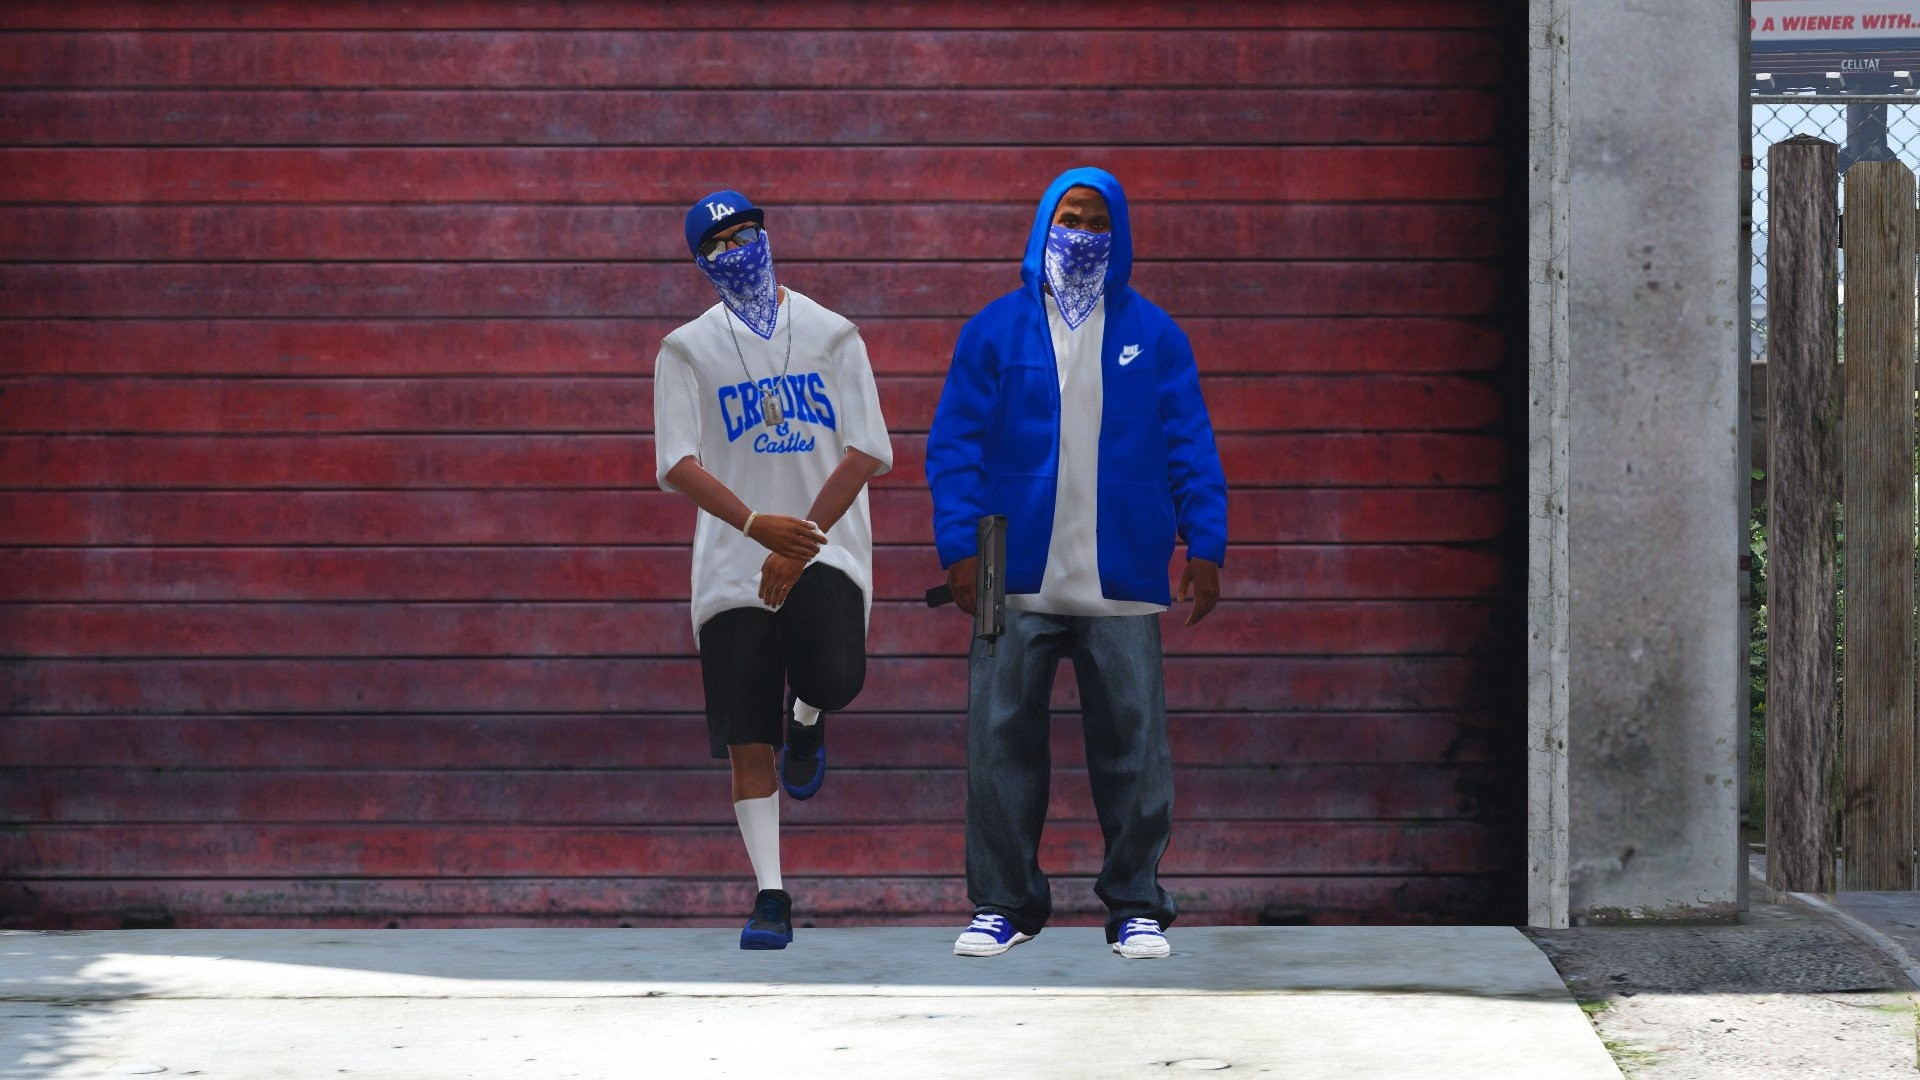 bloods and crips Bloods and cripsnet 708 likes this is an extension of wwwbloodsandcripsnet which is focused toward the intervention, interaction, and culture of the.